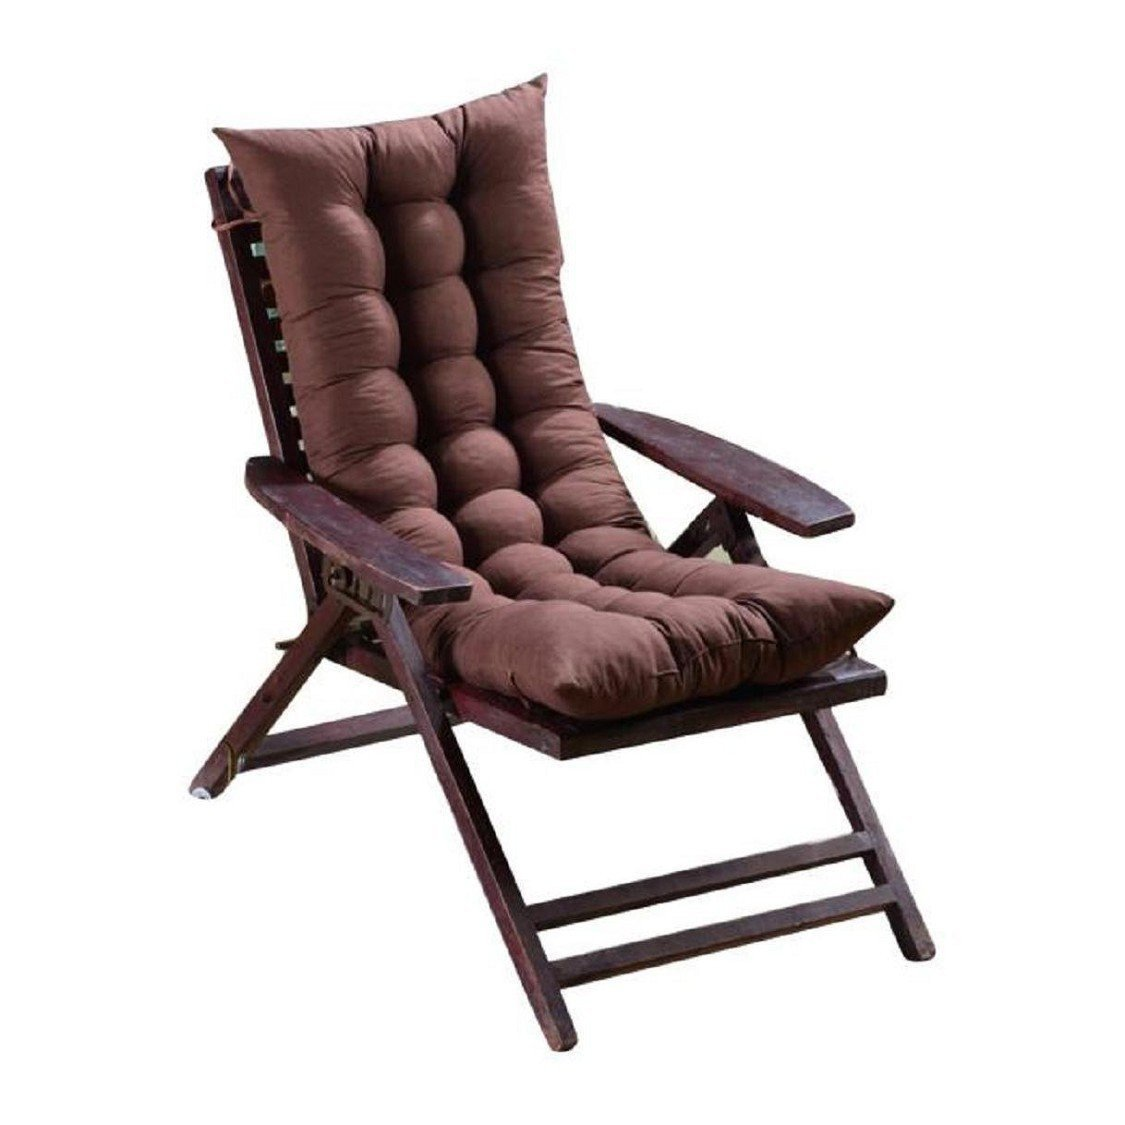 Comfortable Chairs Living Room New Most fortable Living Room Chair Home Furniture Design